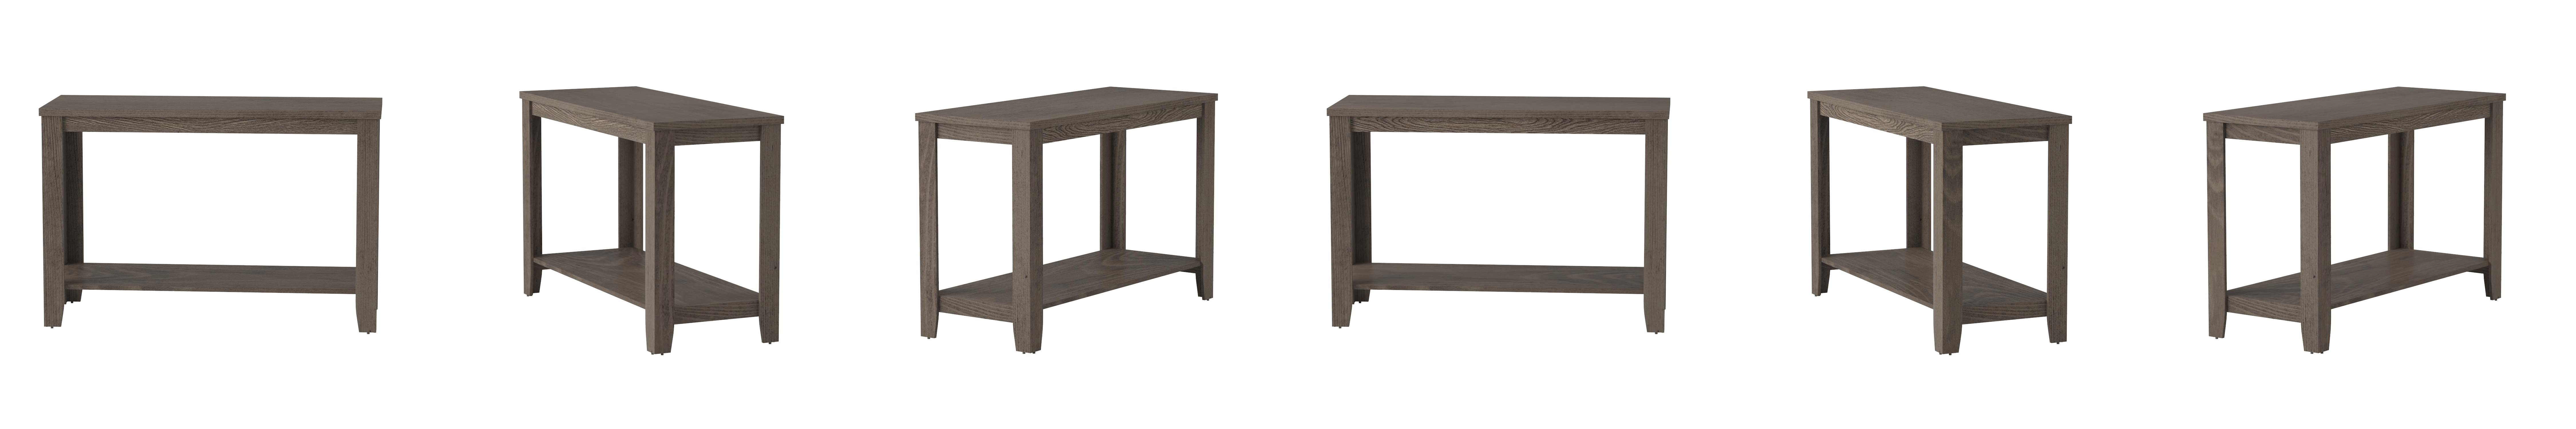 Amazon monarch specialties dark taupe reclaimed look sofa amazon monarch specialties dark taupe reclaimed look sofa console table kitchen dining geotapseo Image collections